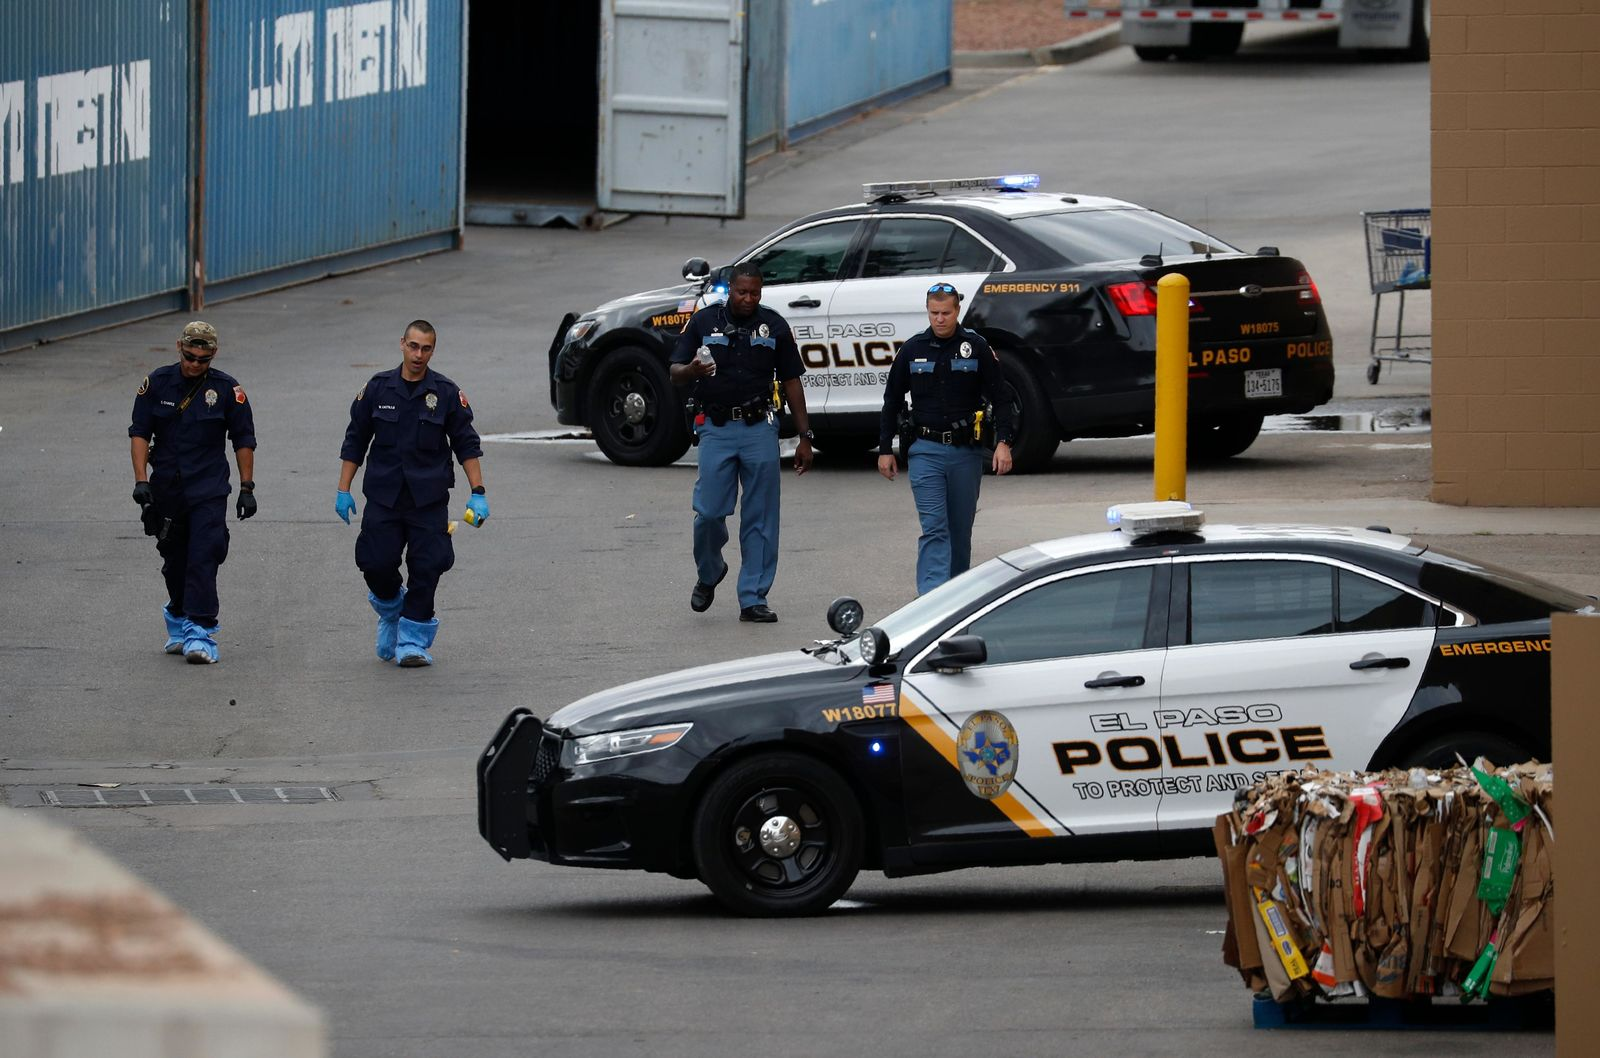 Police officers walk behind a Walmart at the scene of a mass shooting at a shopping complex Tuesday, Aug. 6, 2019, in El Paso, Texas. (AP Photo/John Locher)